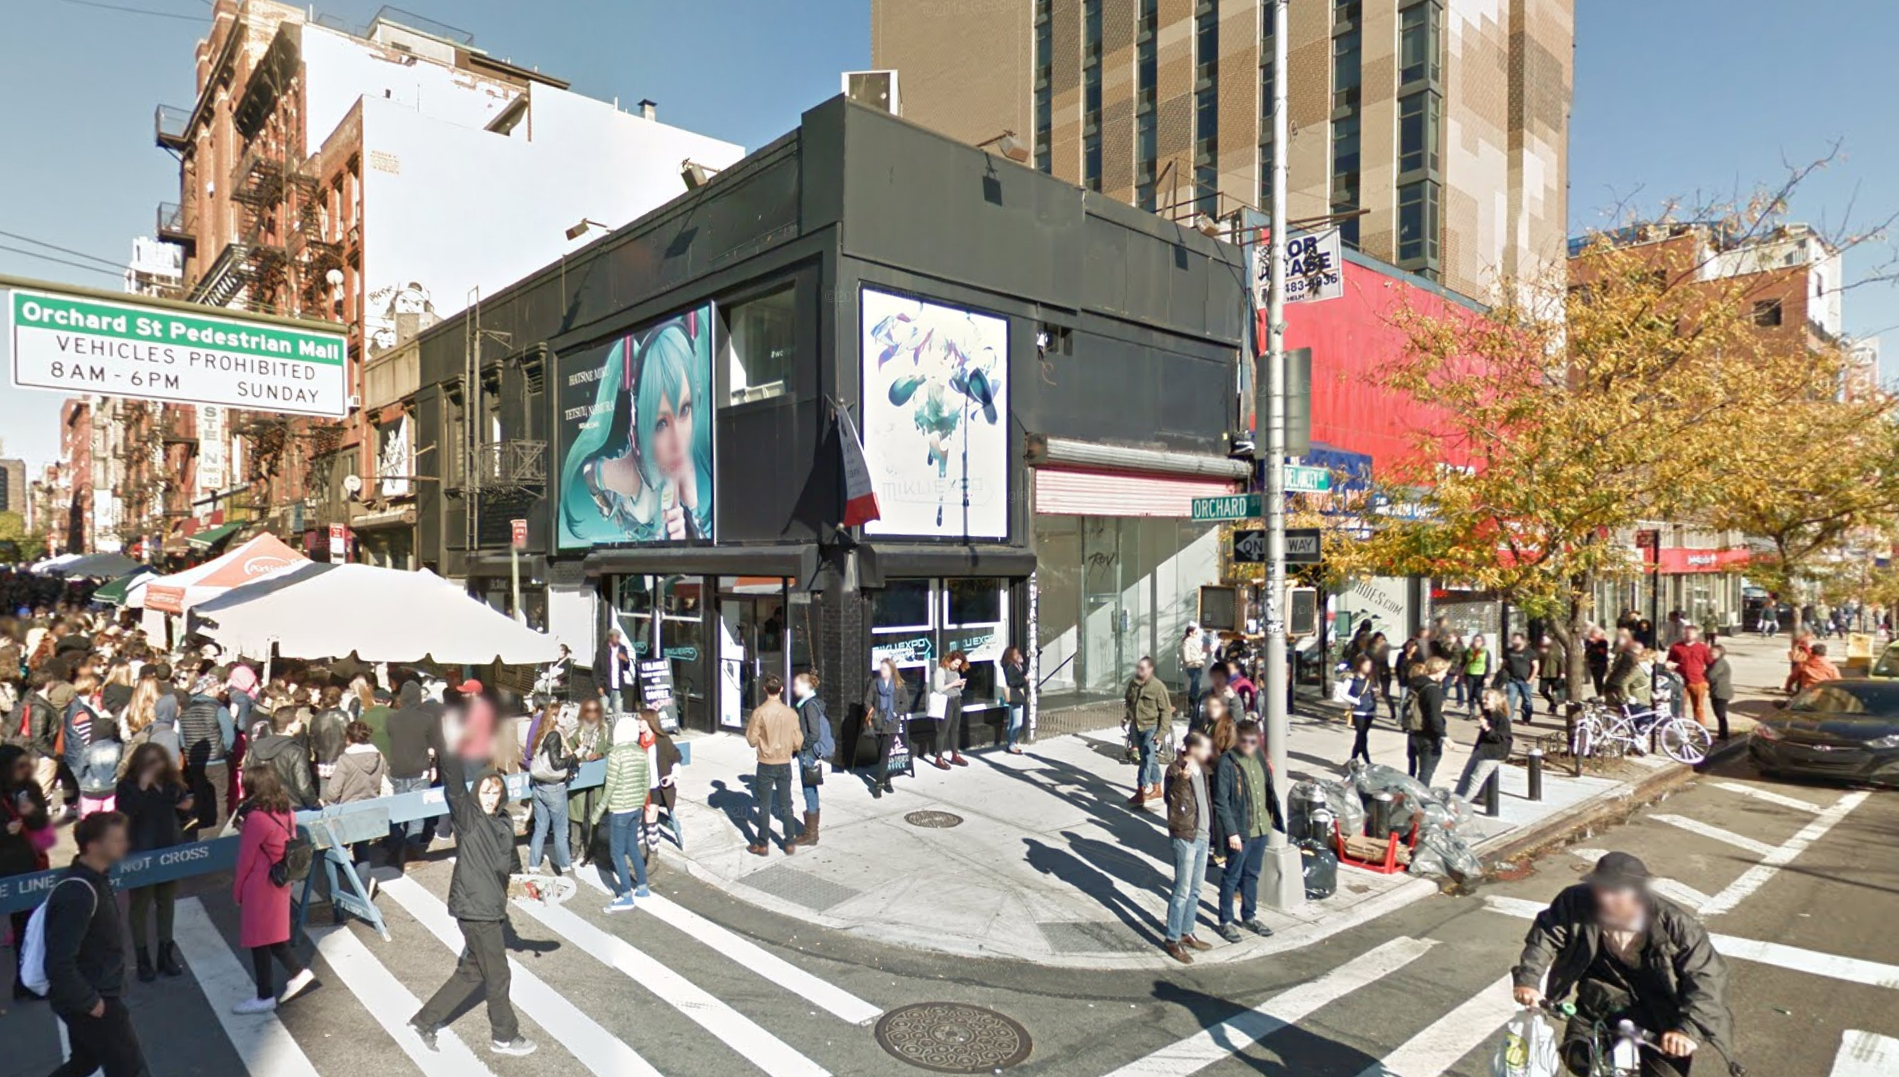 86 Delancey Street, October 2014. Photo via Google Maps